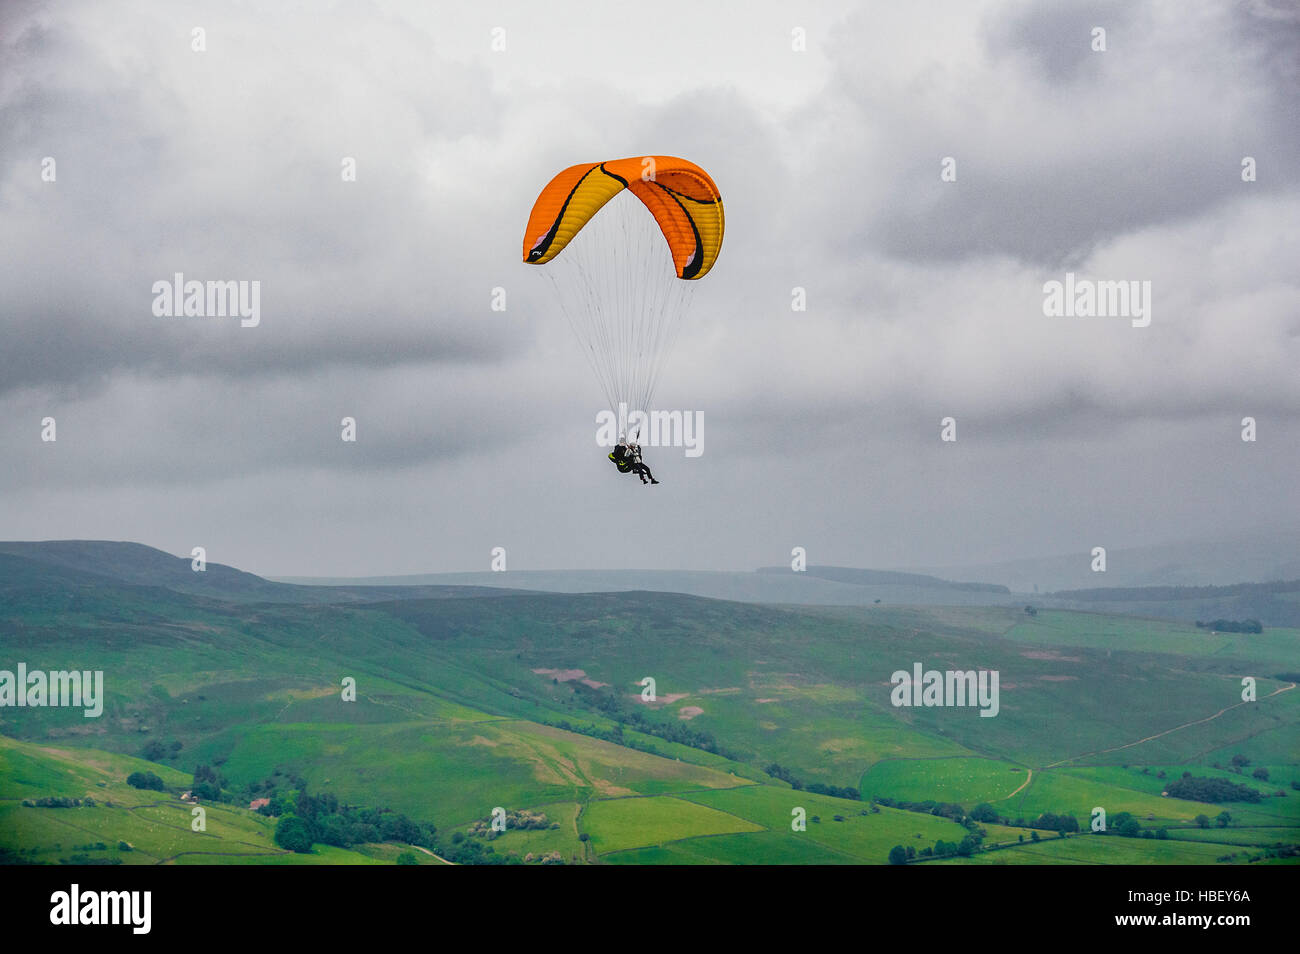 Paragliding, Peak District, Derbyshire, UK. - Stock Image